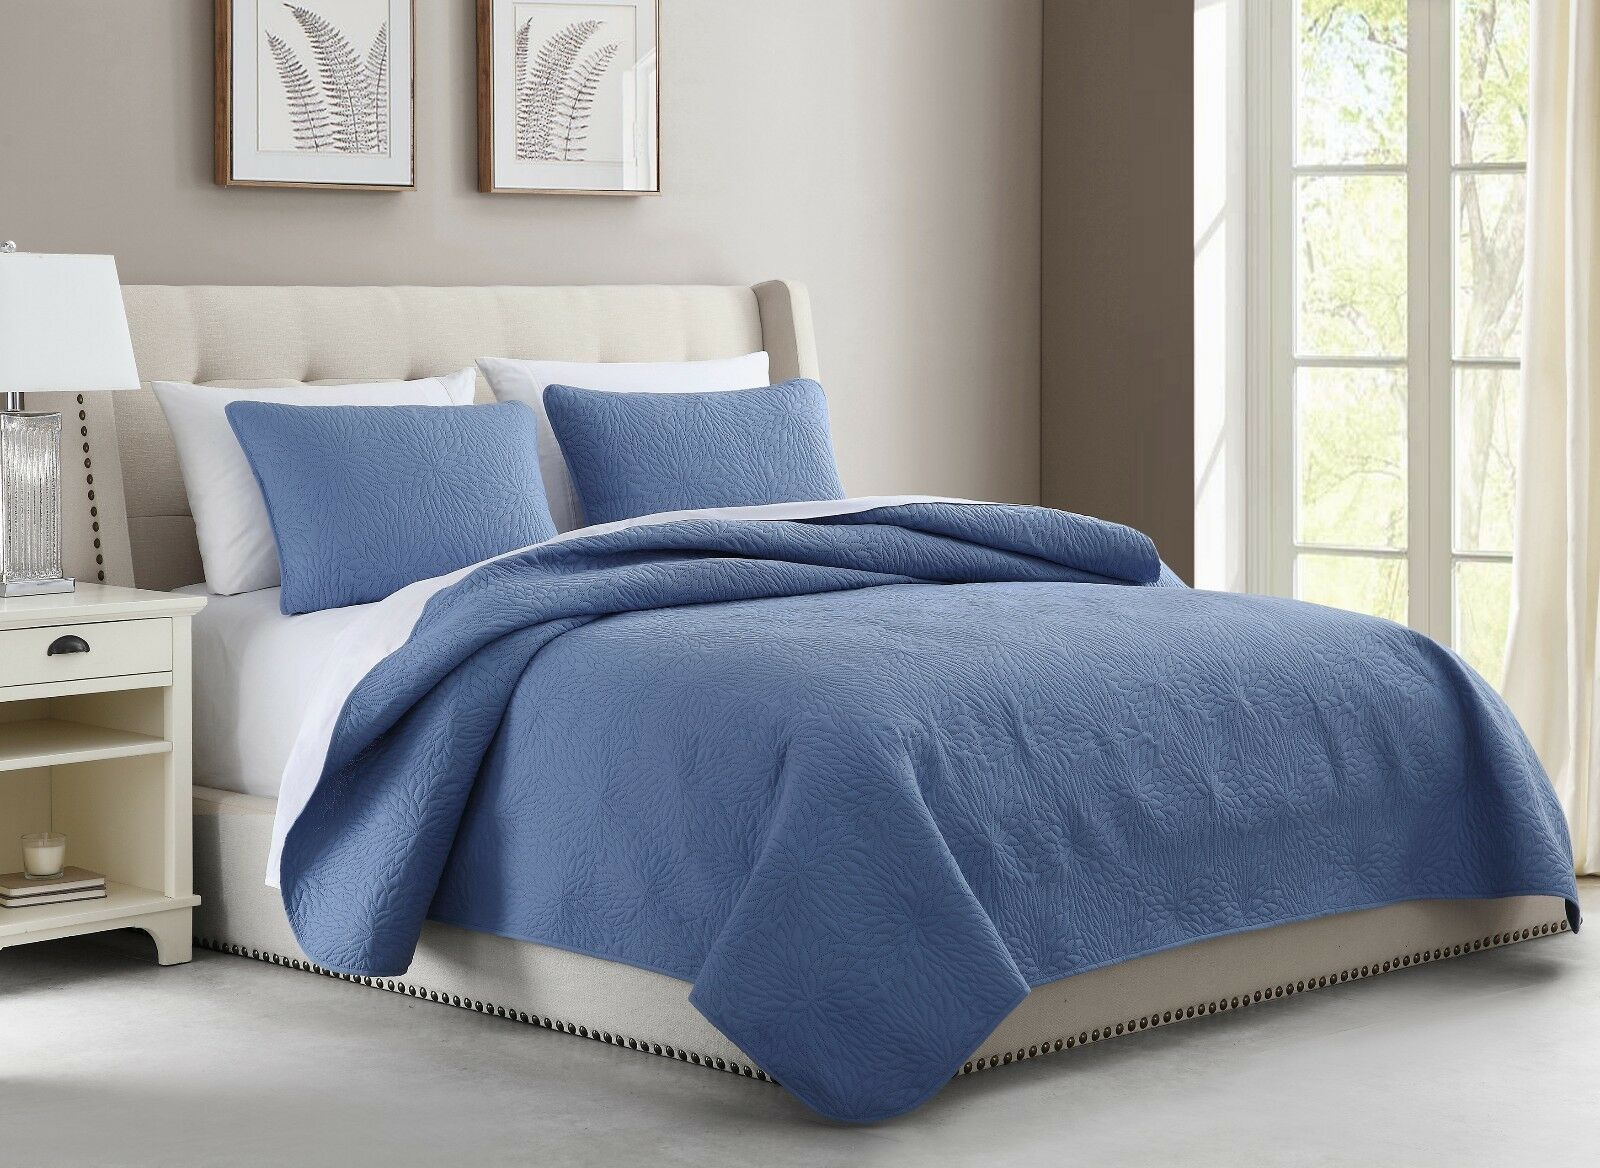 Aidee coverlet Set Lightweight Thermal Pressing Leafage Beddings Smoky blueeeeee